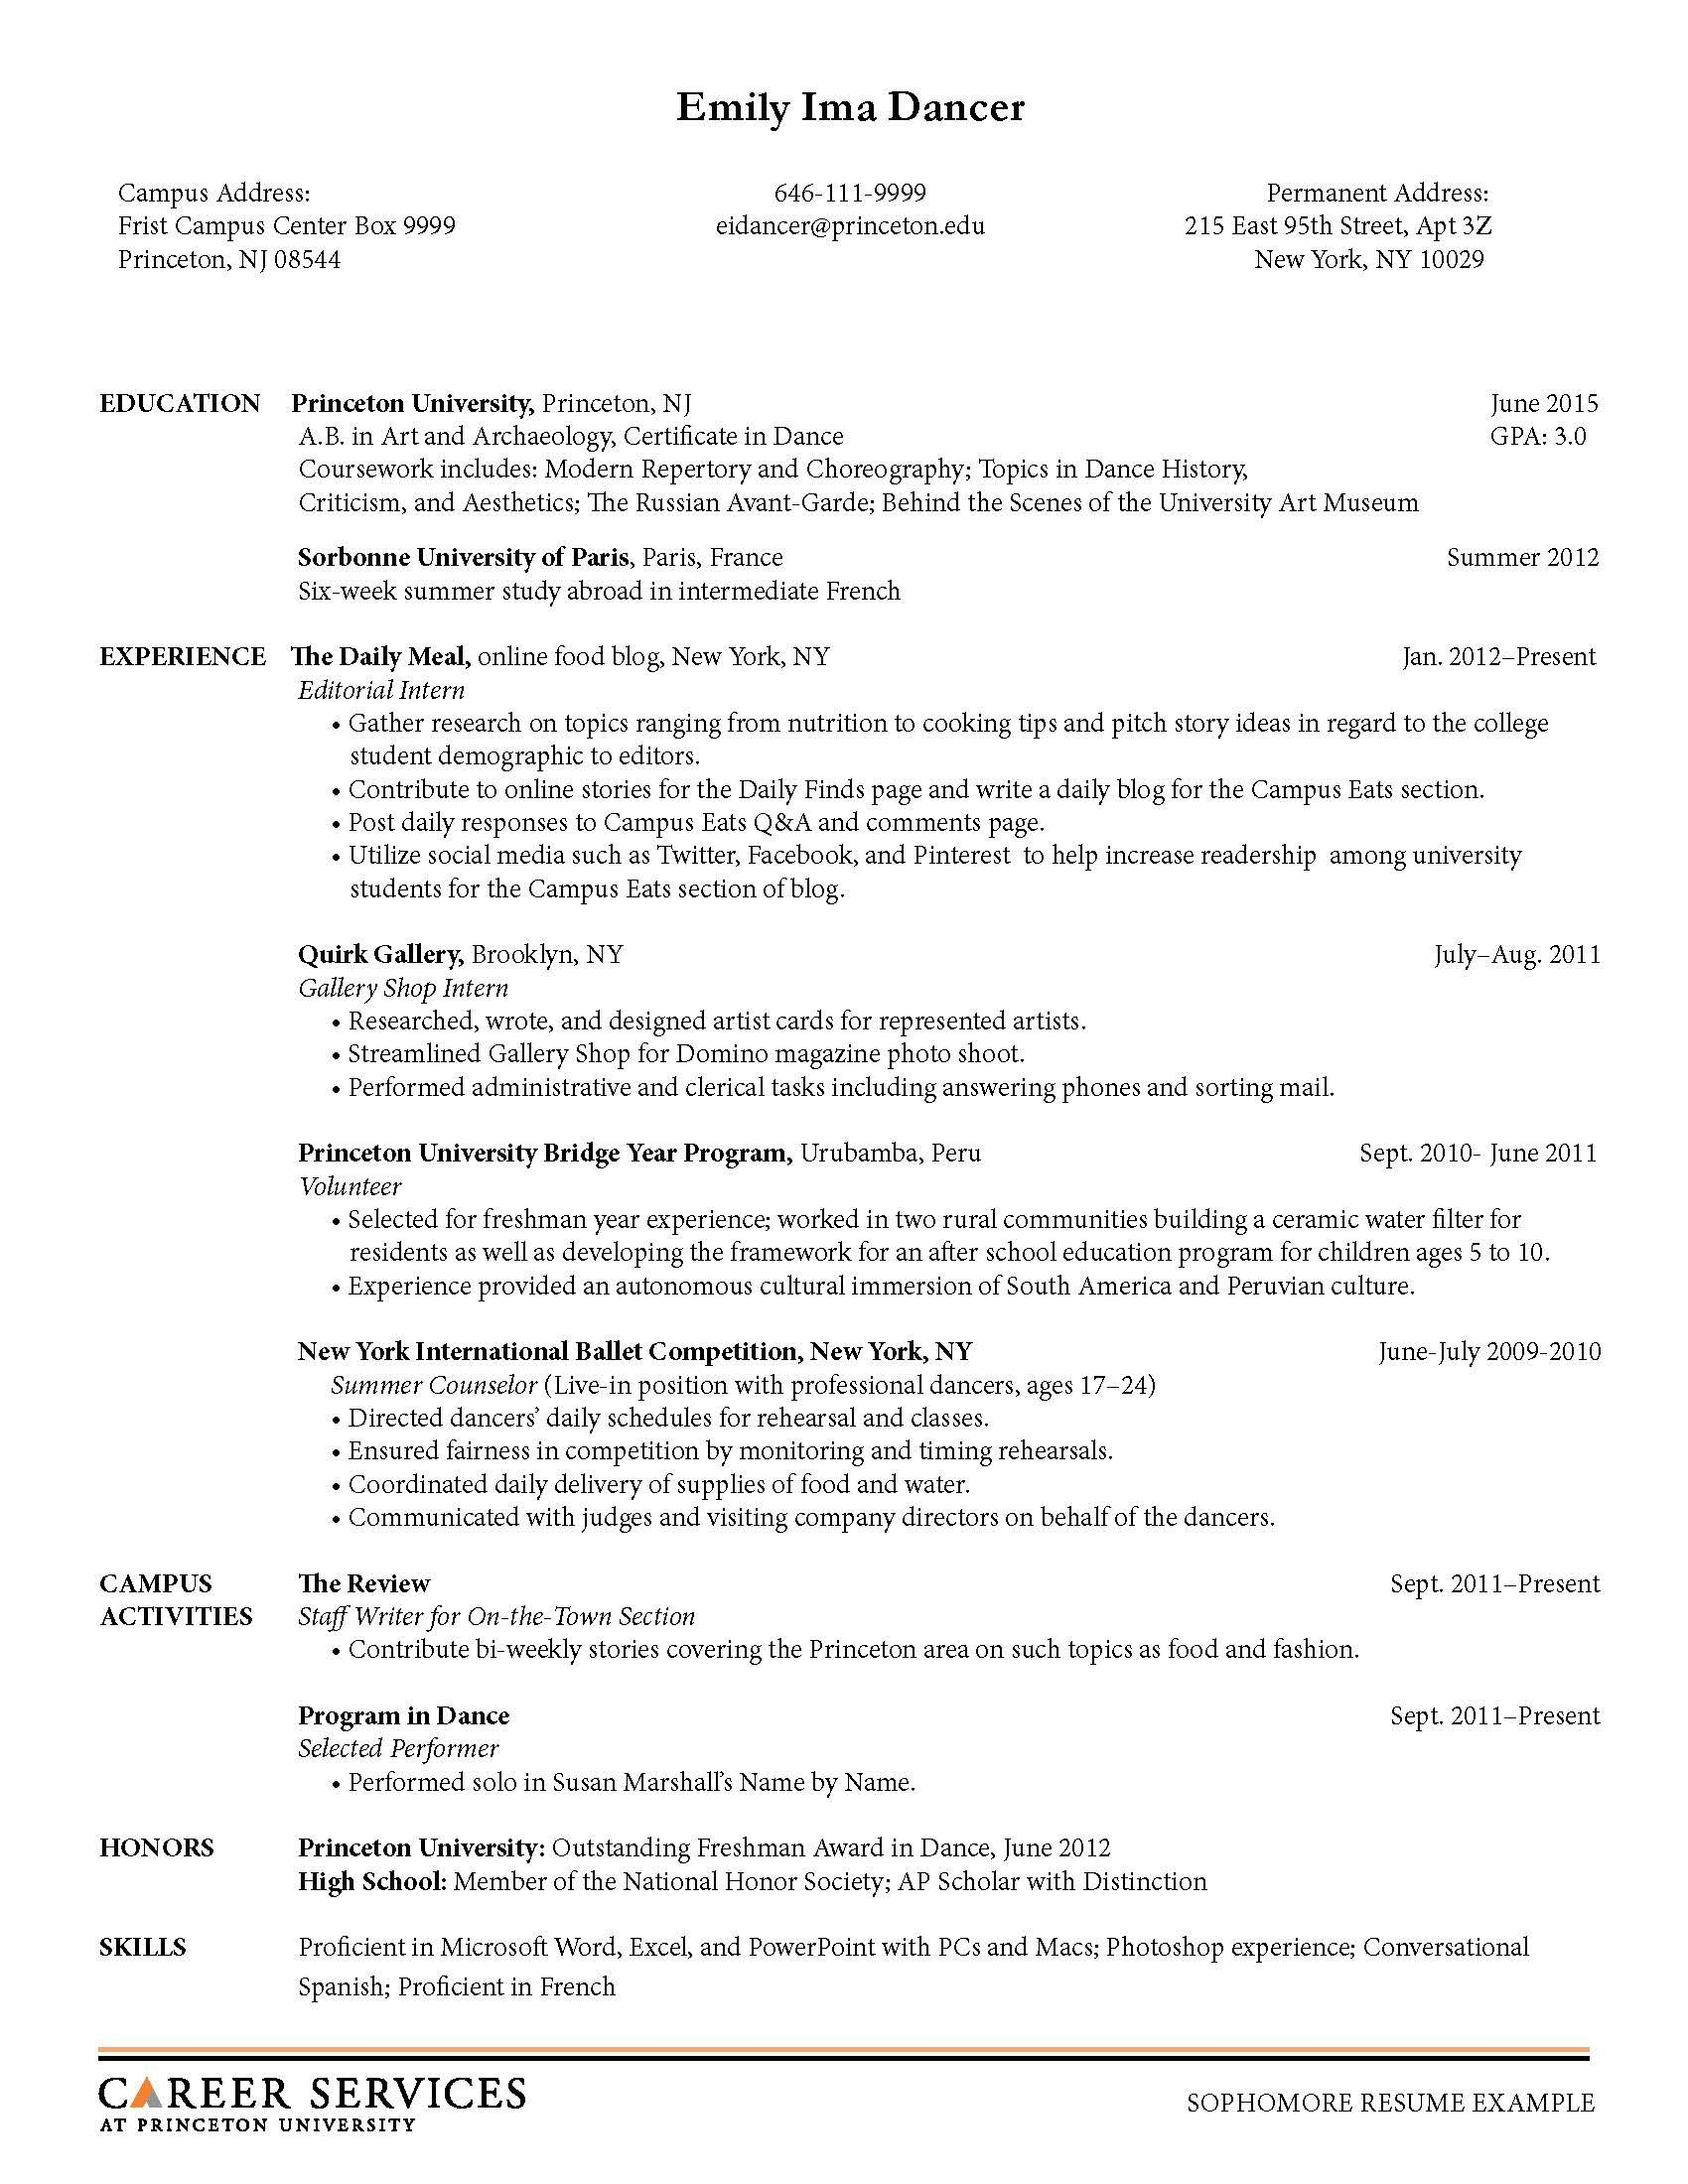 Picnictoimpeachus  Gorgeous Sample Resume Resume And Career On Pinterest With Glamorous Career Change Resume Templates Besides How To Write Resume Profile Furthermore Internship Experience On Resume With Comely Is Cv A Resume Also Sample Resume Profile Statements In Addition Project Resume And Respiratory Therapist Resume Samples As Well As Youth Ministry Resume Additionally Cio Resumes From Pinterestcom With Picnictoimpeachus  Glamorous Sample Resume Resume And Career On Pinterest With Comely Career Change Resume Templates Besides How To Write Resume Profile Furthermore Internship Experience On Resume And Gorgeous Is Cv A Resume Also Sample Resume Profile Statements In Addition Project Resume From Pinterestcom